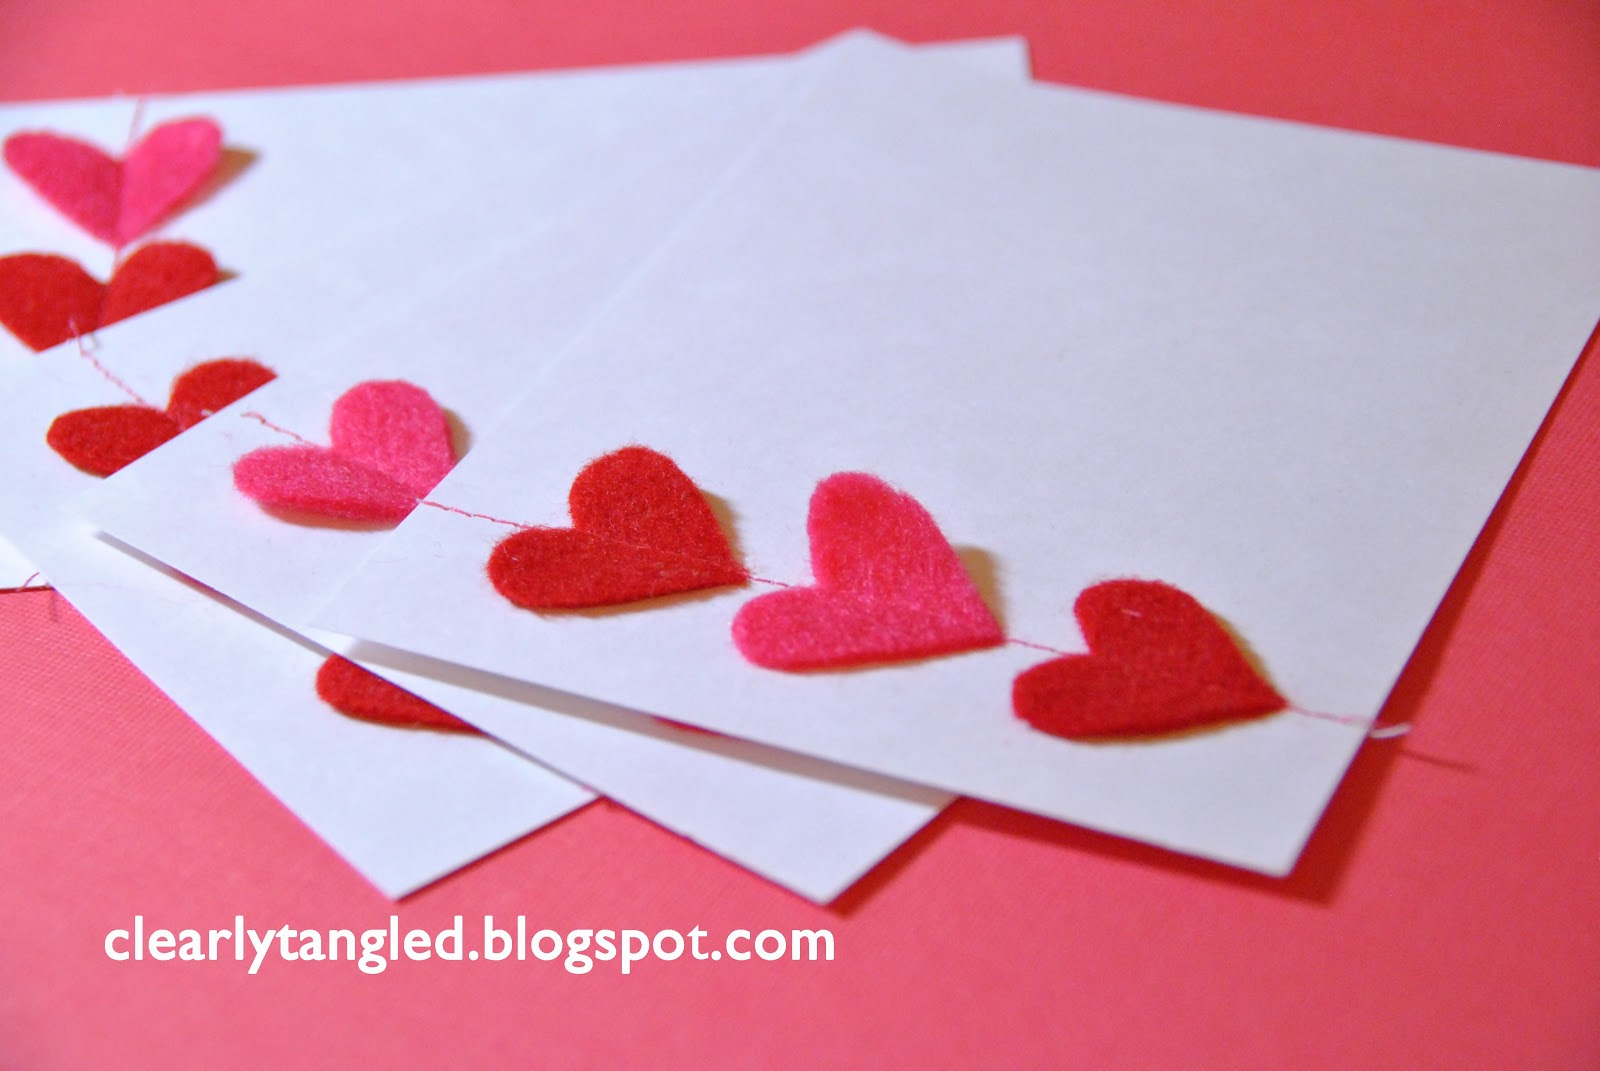 Clearlytangled Stitched Felt Heart Valentines Cards Ways To Rid